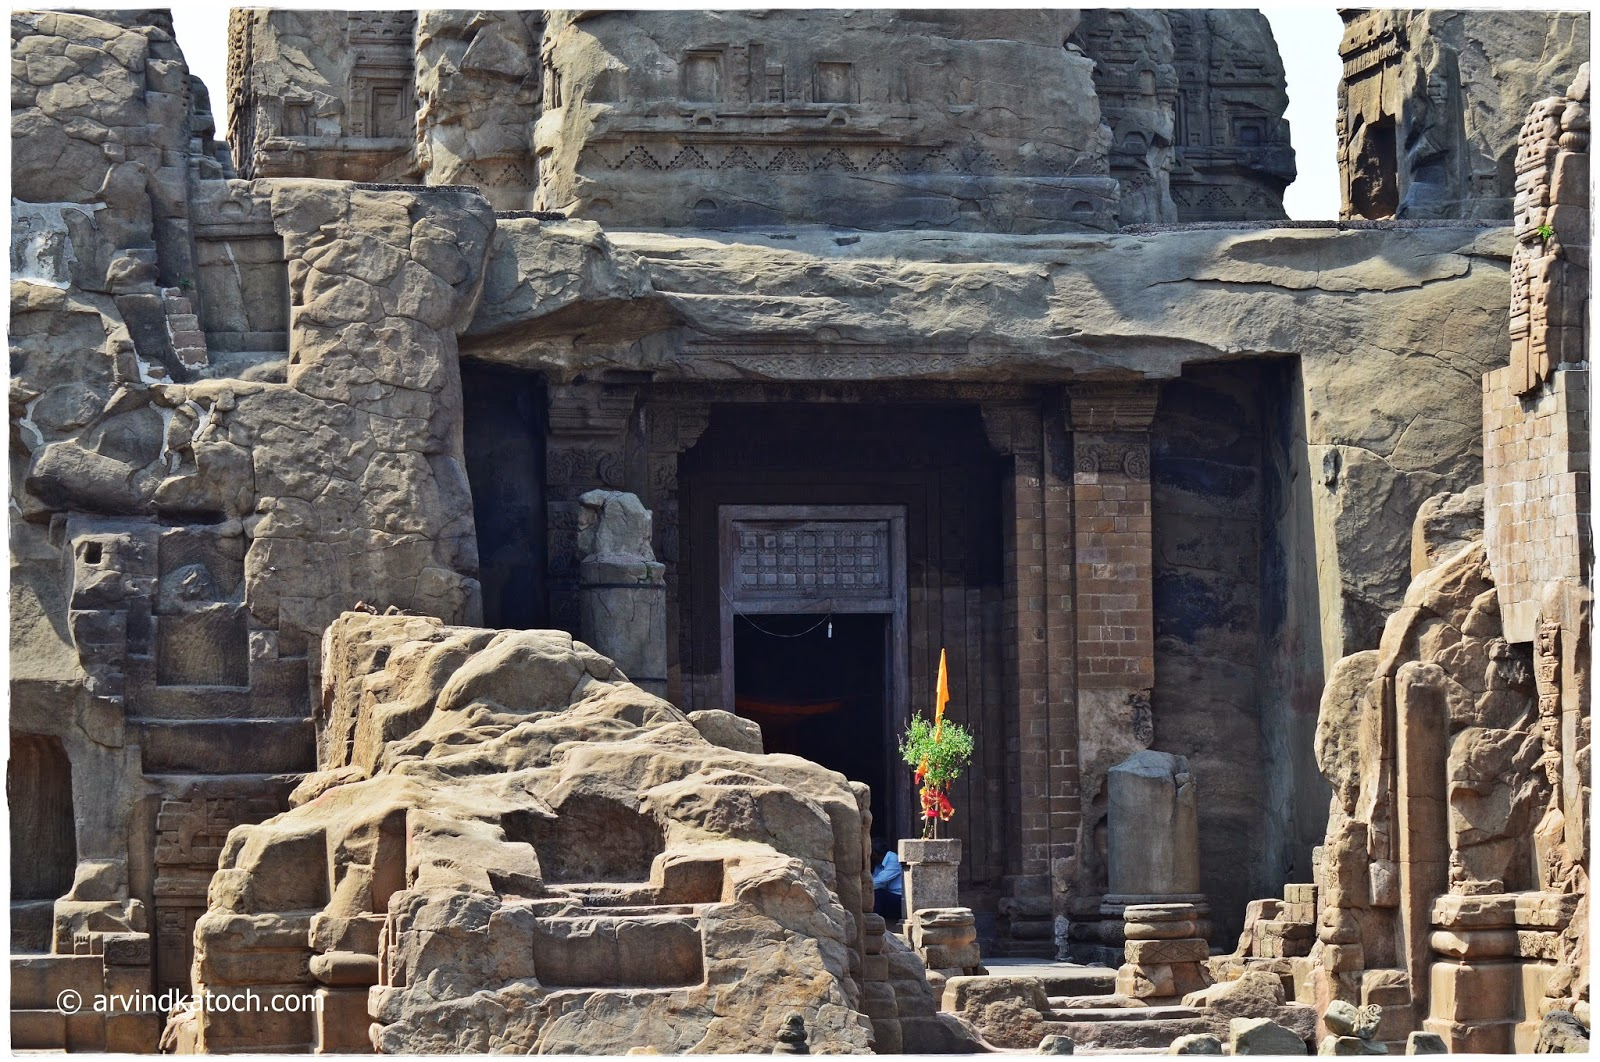 Masroo Rock Cut Temple, Masroor, Rock Cut Temples